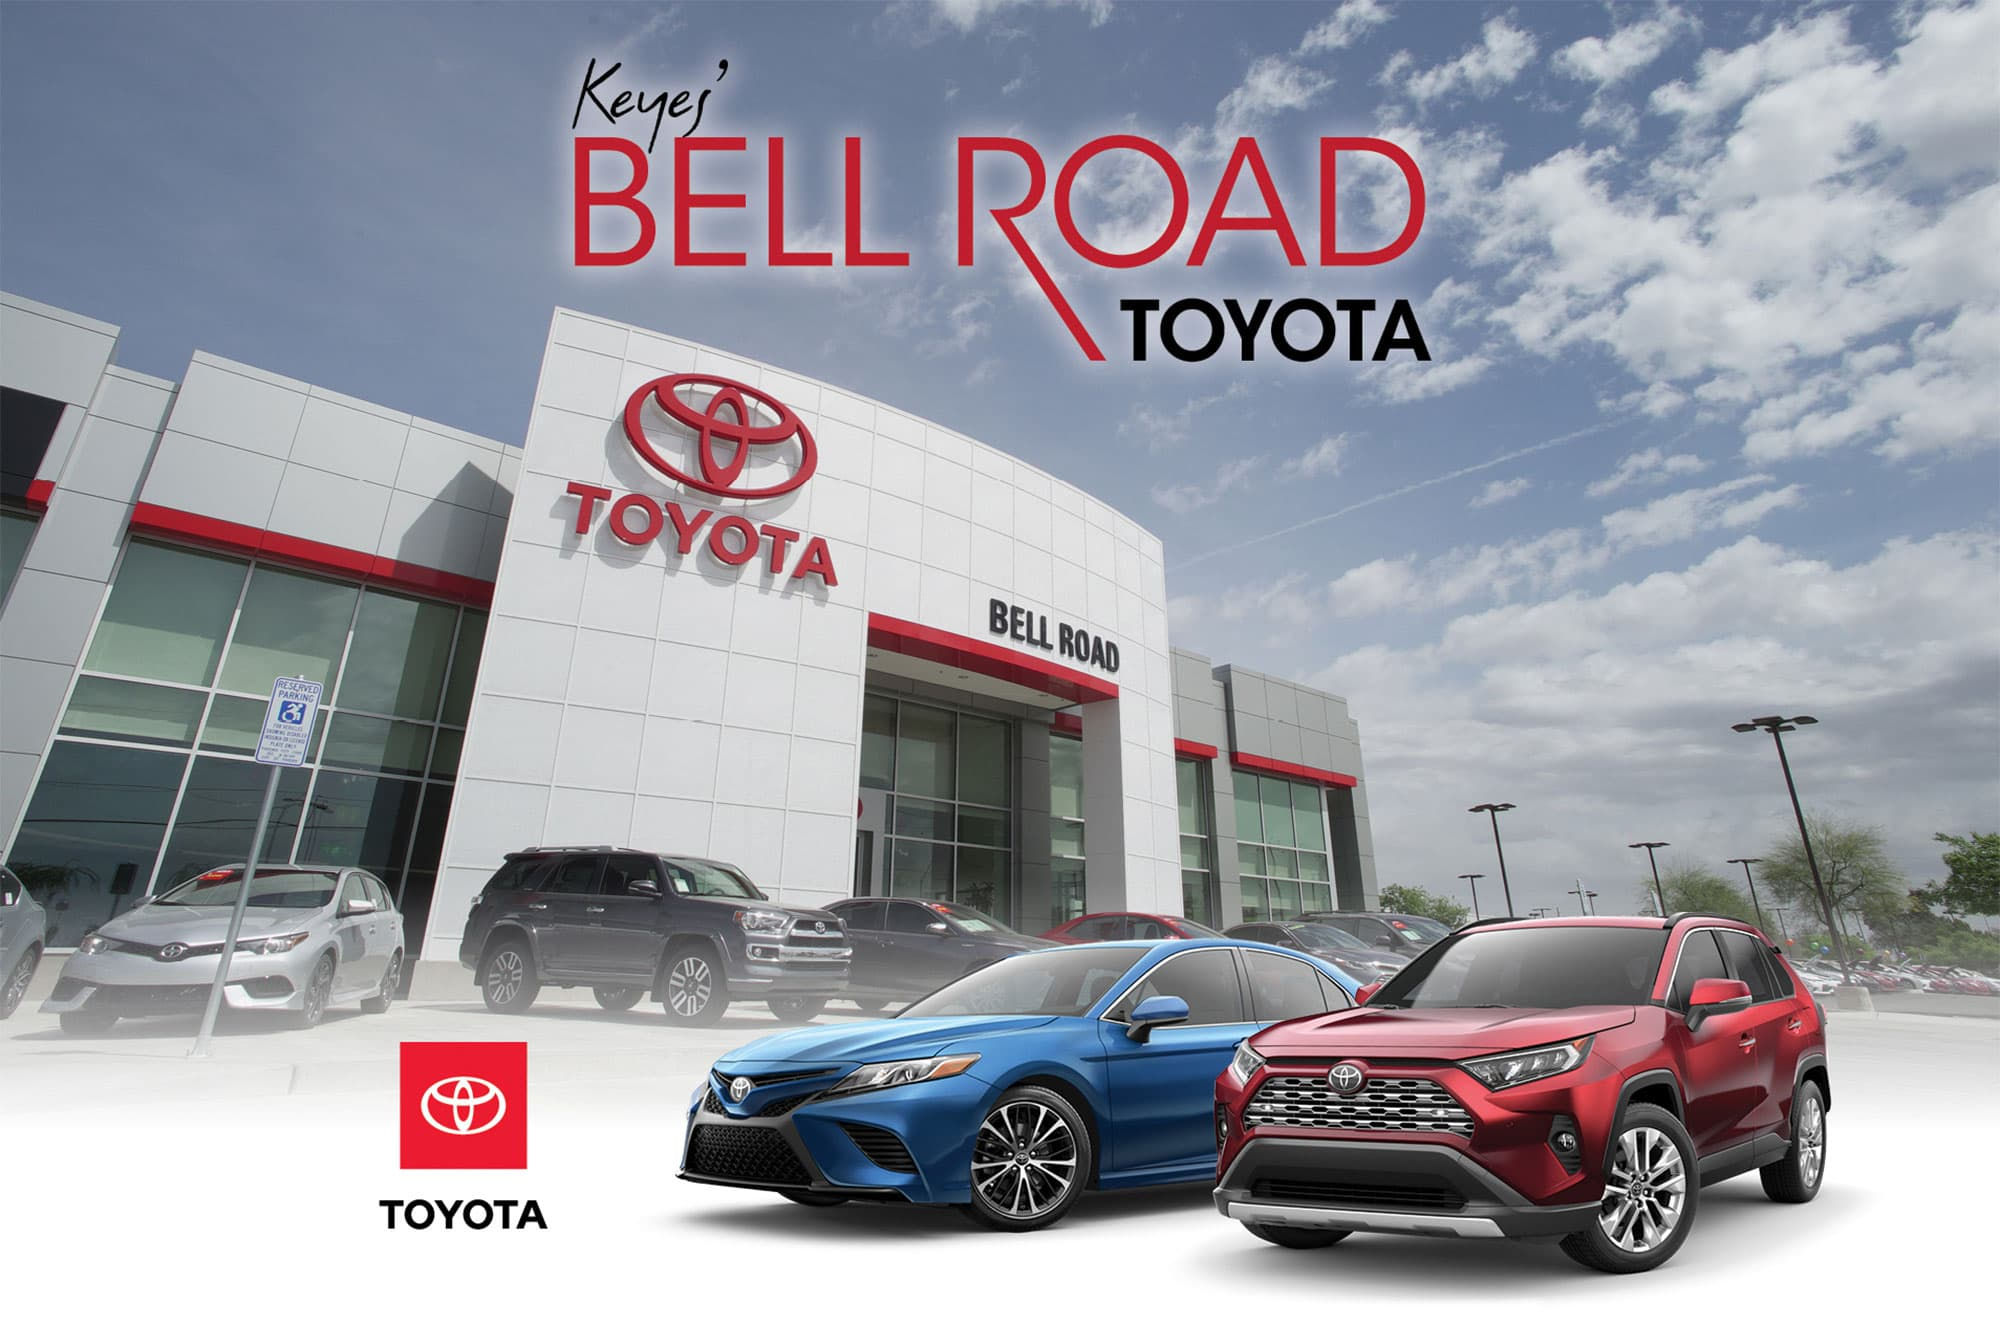 Why Buy at Keys Bell Road Toyota